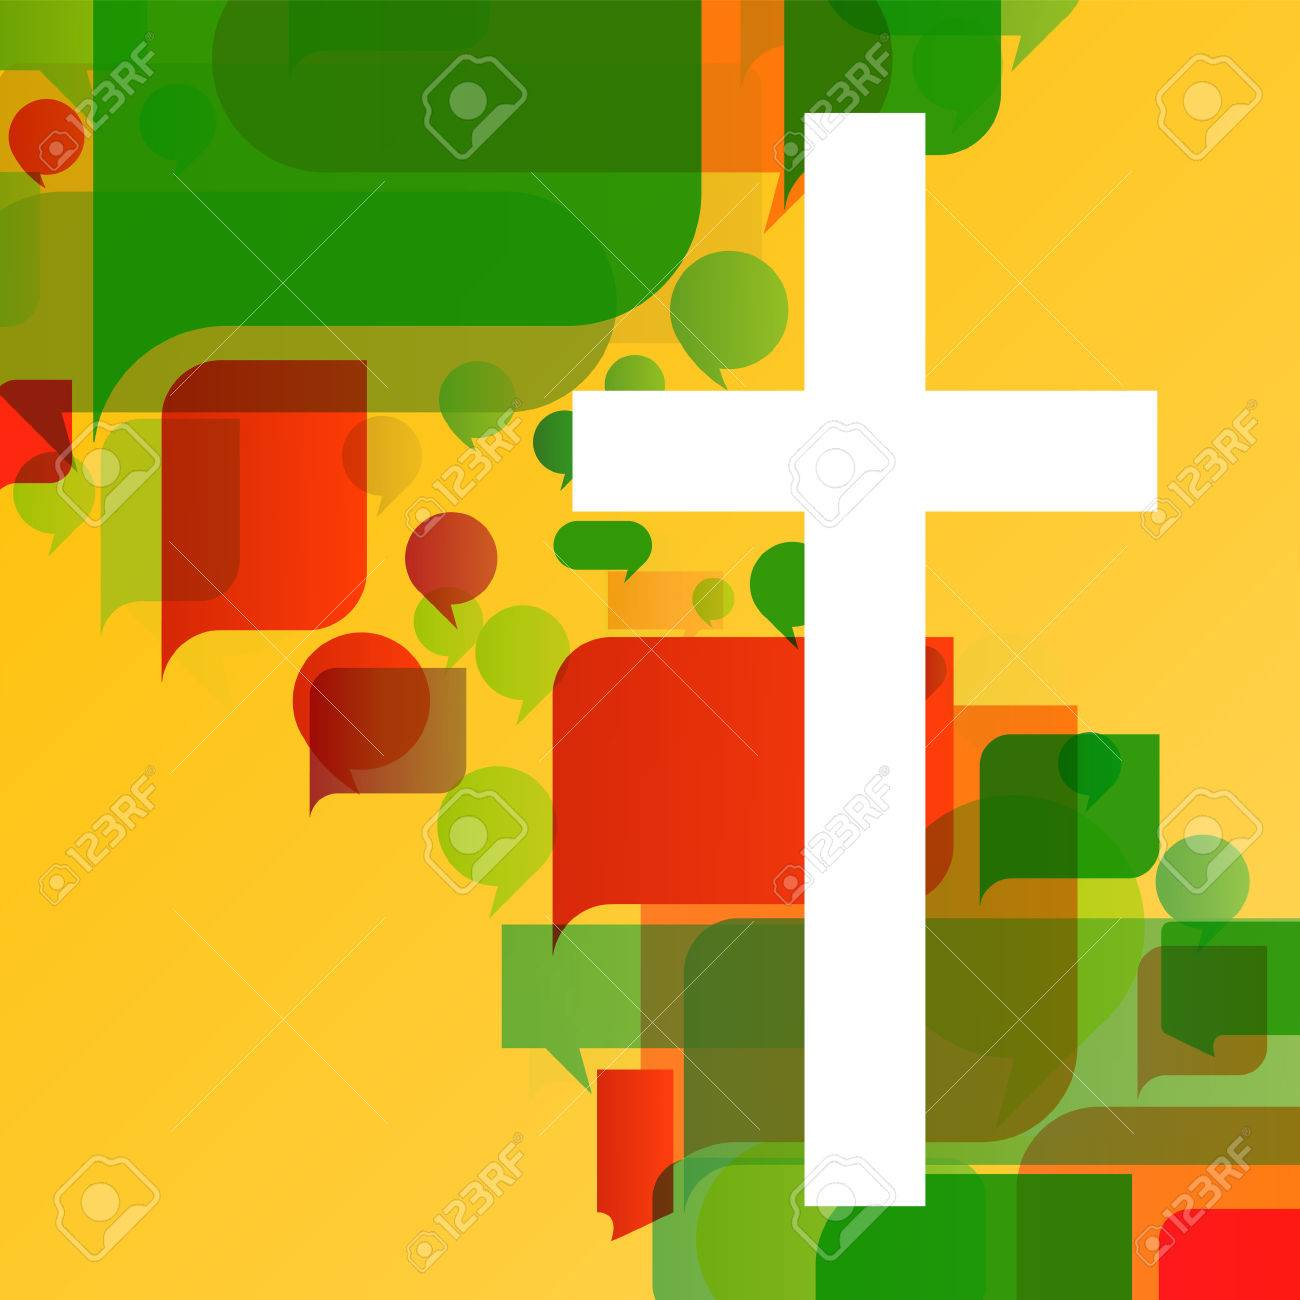 Christianity religion cross mosaic concept abstract background - 25213783